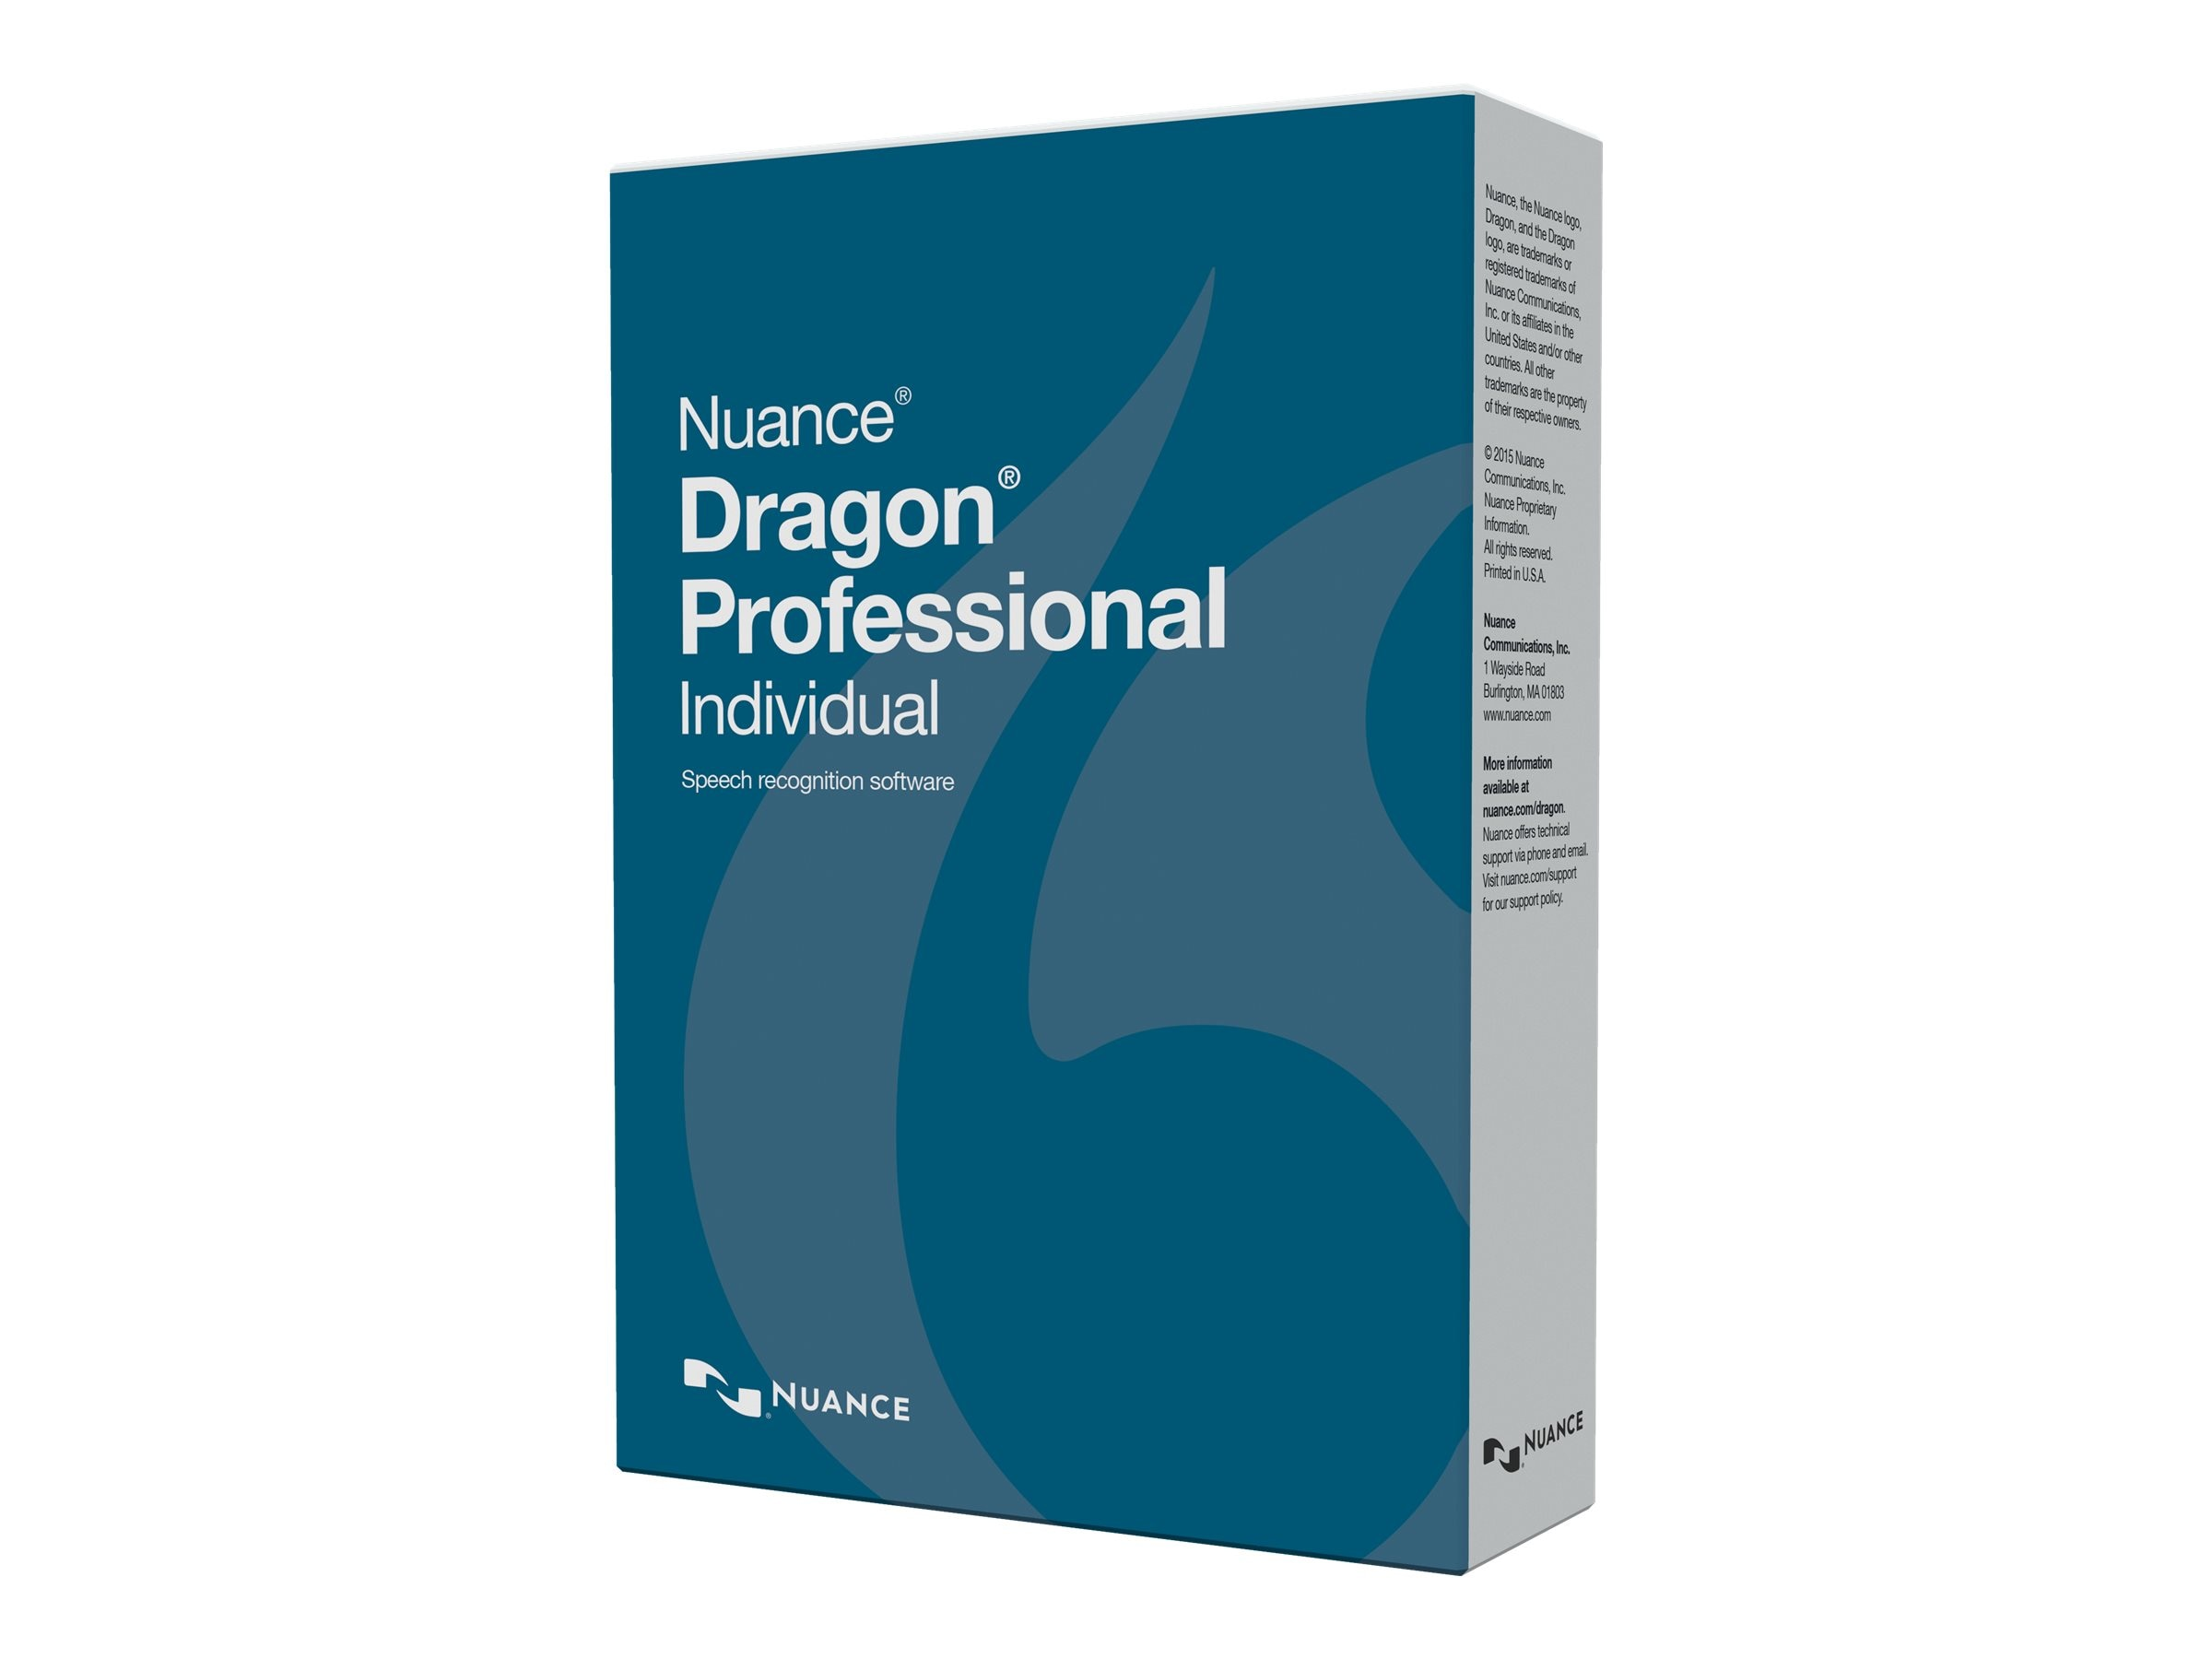 Nuance ENG DRAGON PROFESSIONAL        DVD INDIVIDUAL RETAIL, K809A-G00-14.0, 30833716, Software - Voice Recognition